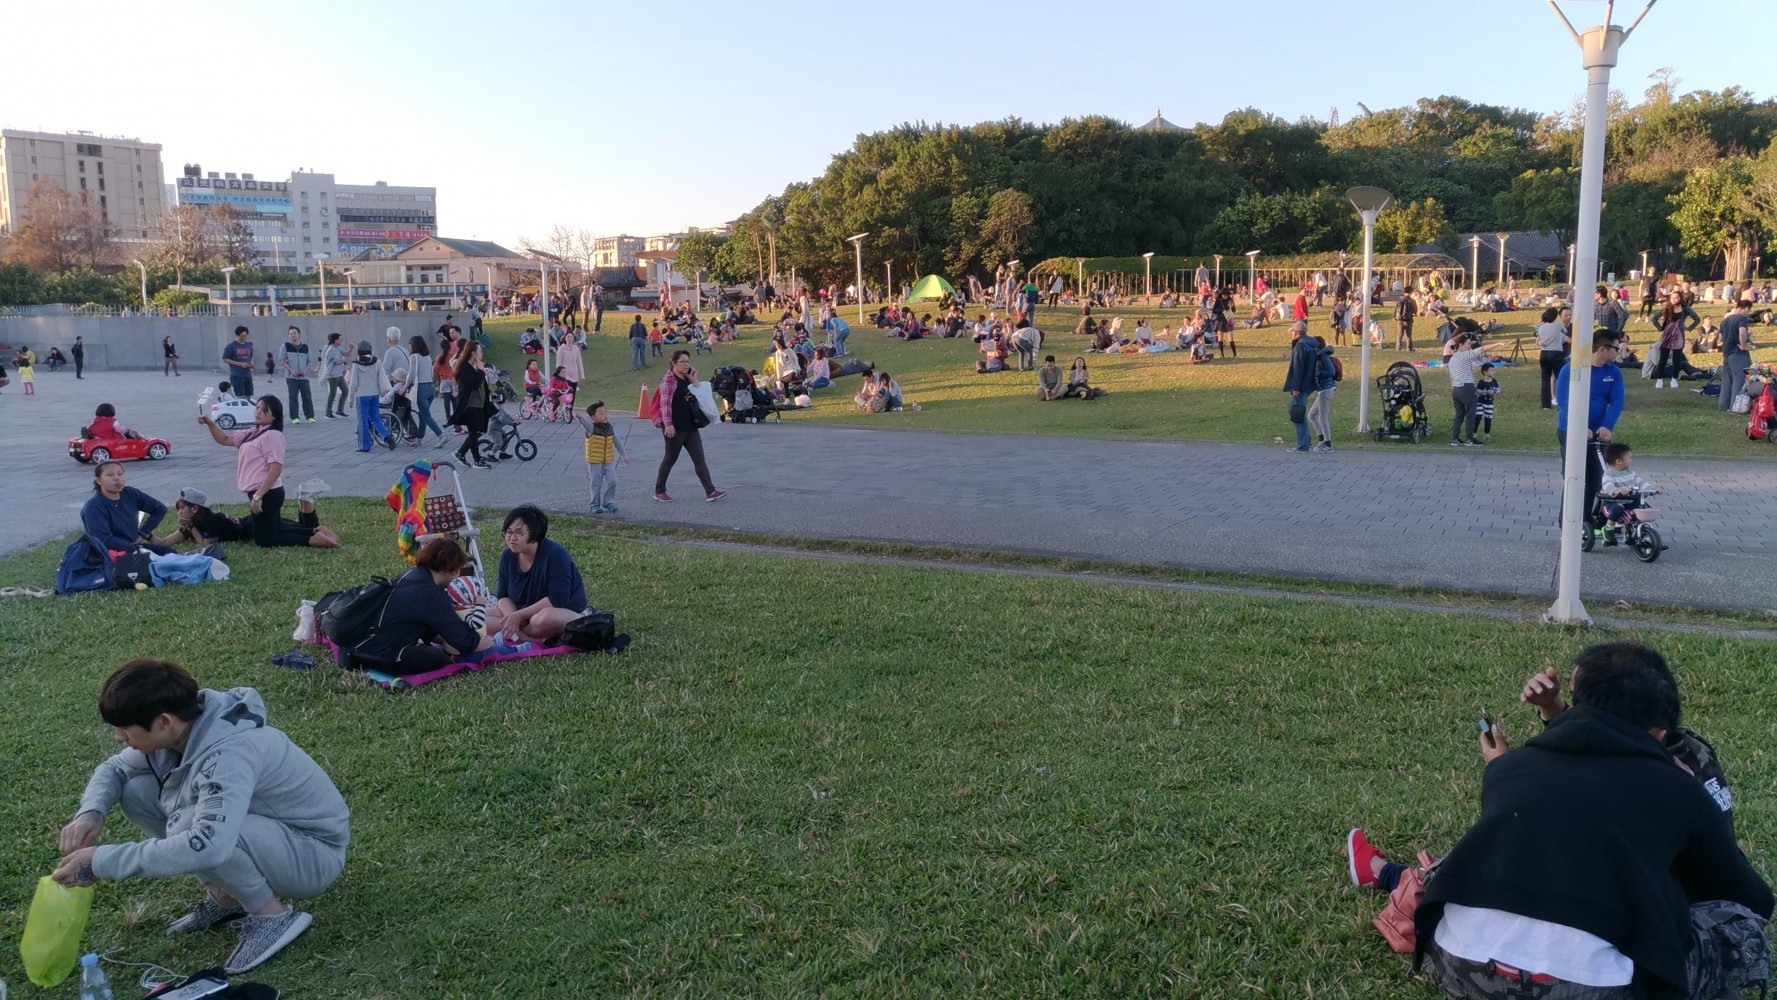 Adults are chatting and children are running on the lawn in the Yuanshan Area of Taipei Expo Park.